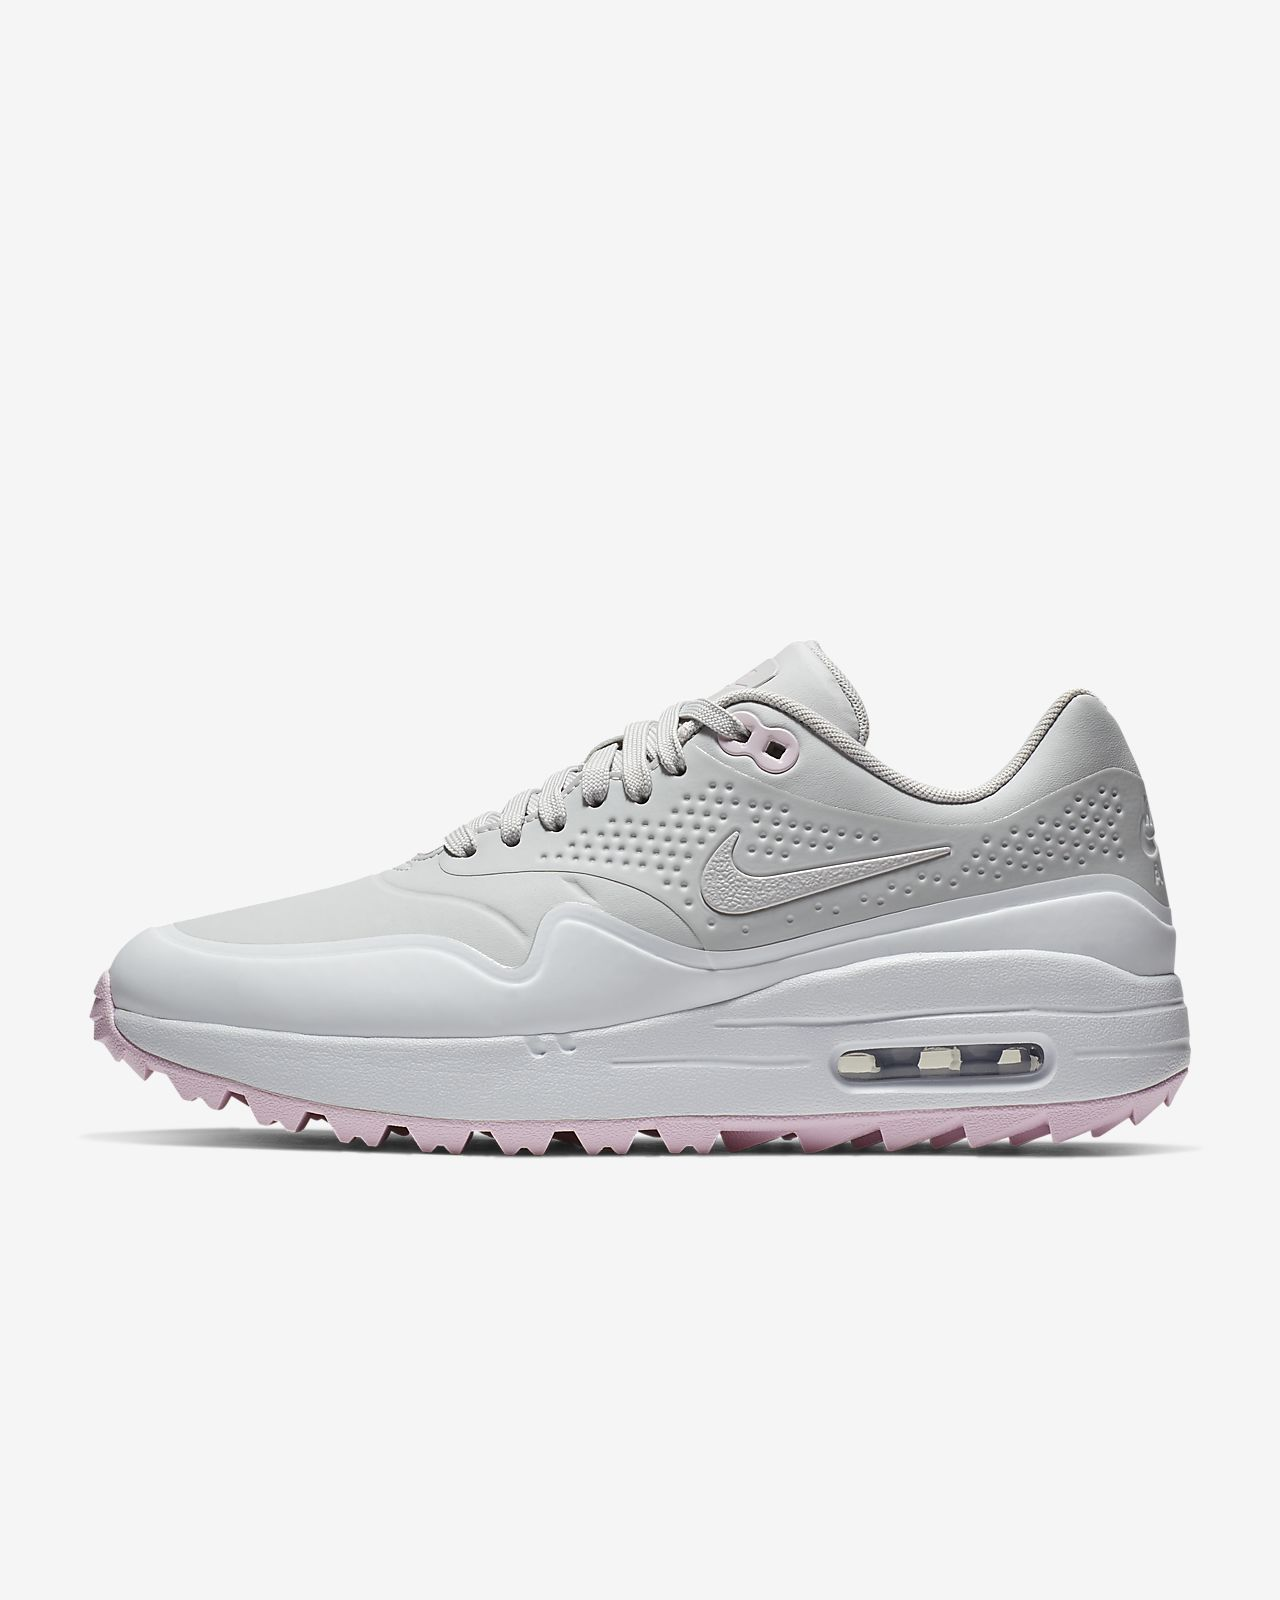 new style be227 3e3ee ... Chaussure de golf Nike Air Max 1 G pour Femme